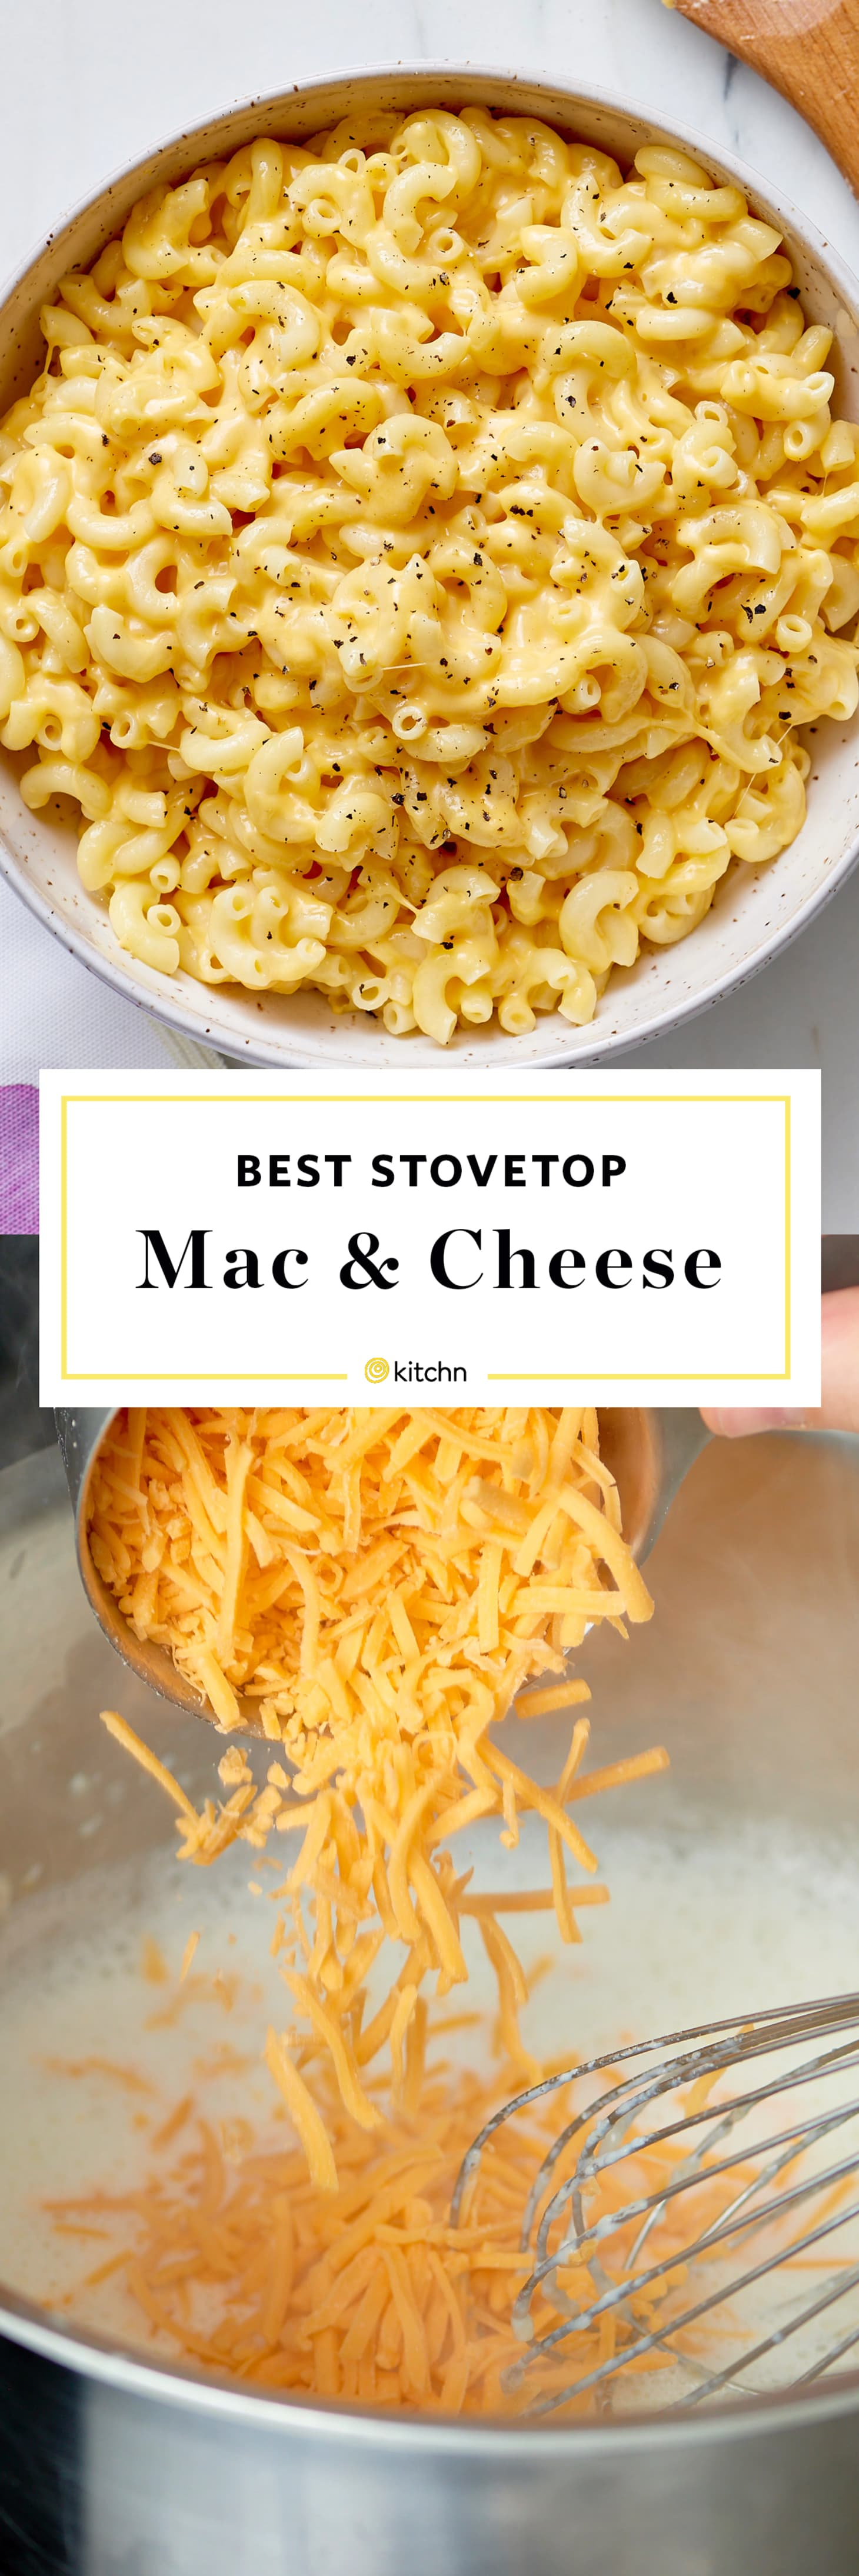 How To Make Creamy Macaroni and Cheese on the Stove